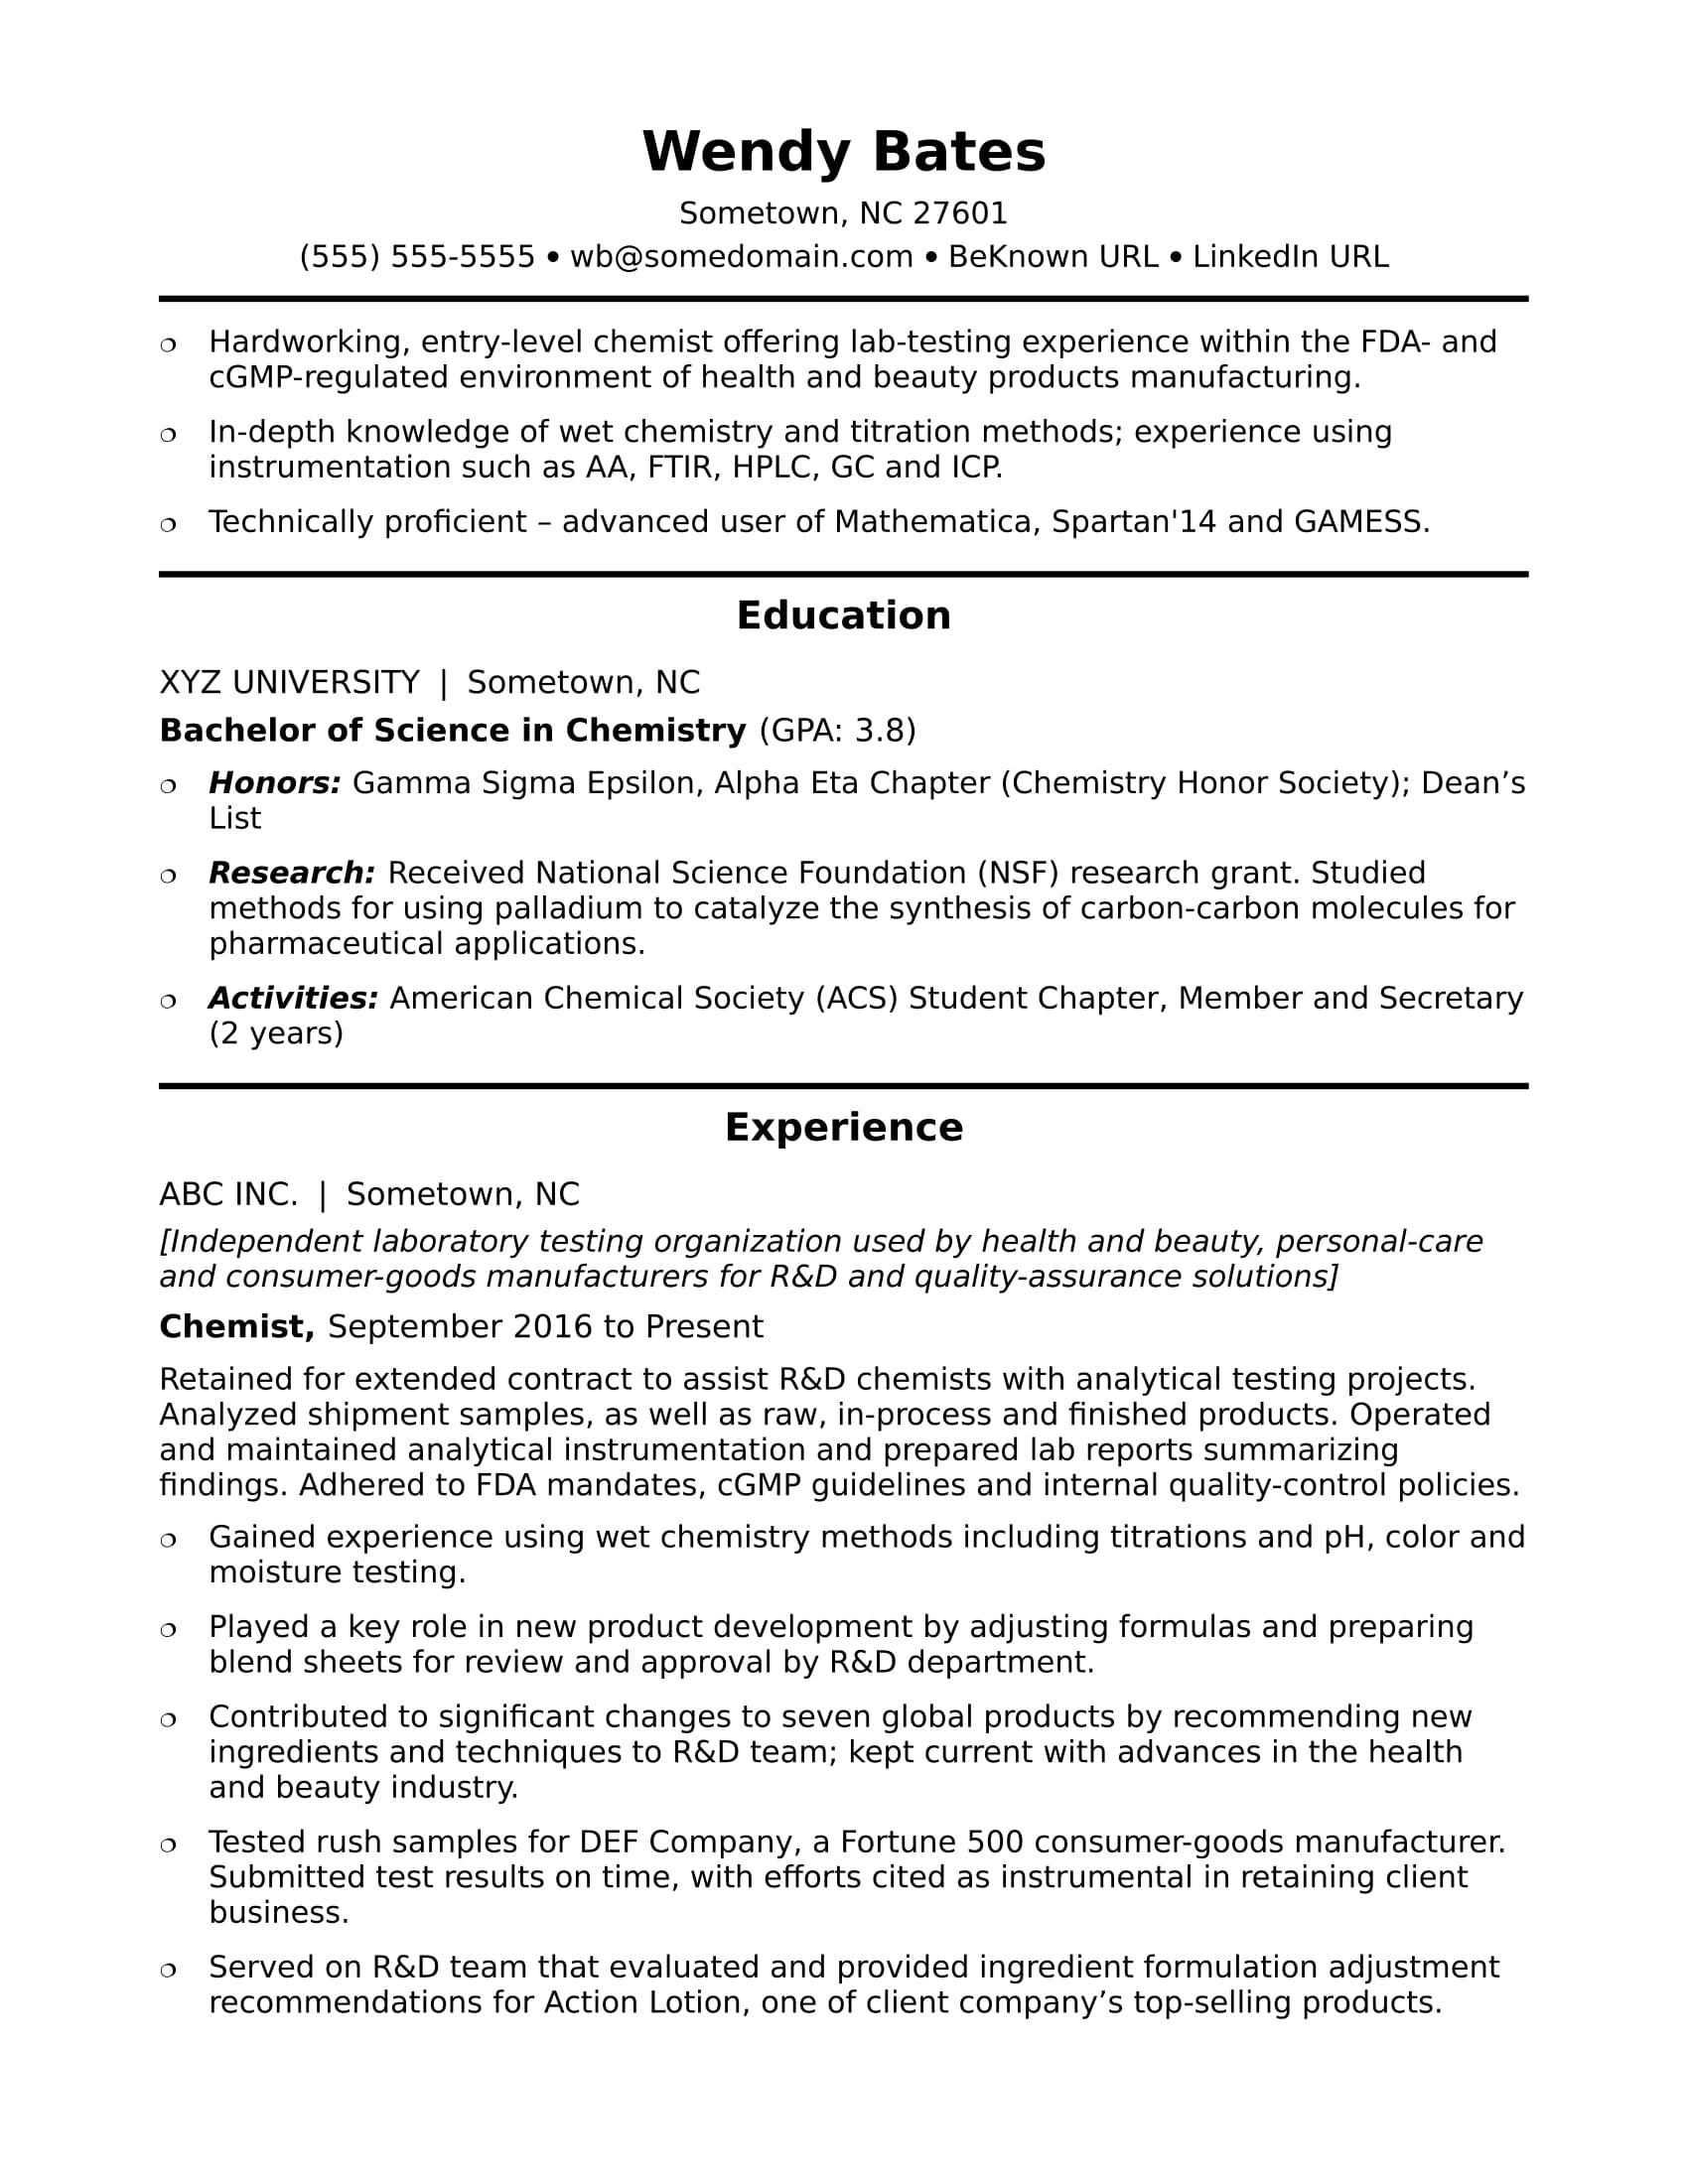 Sample resume for an entry-level chemist